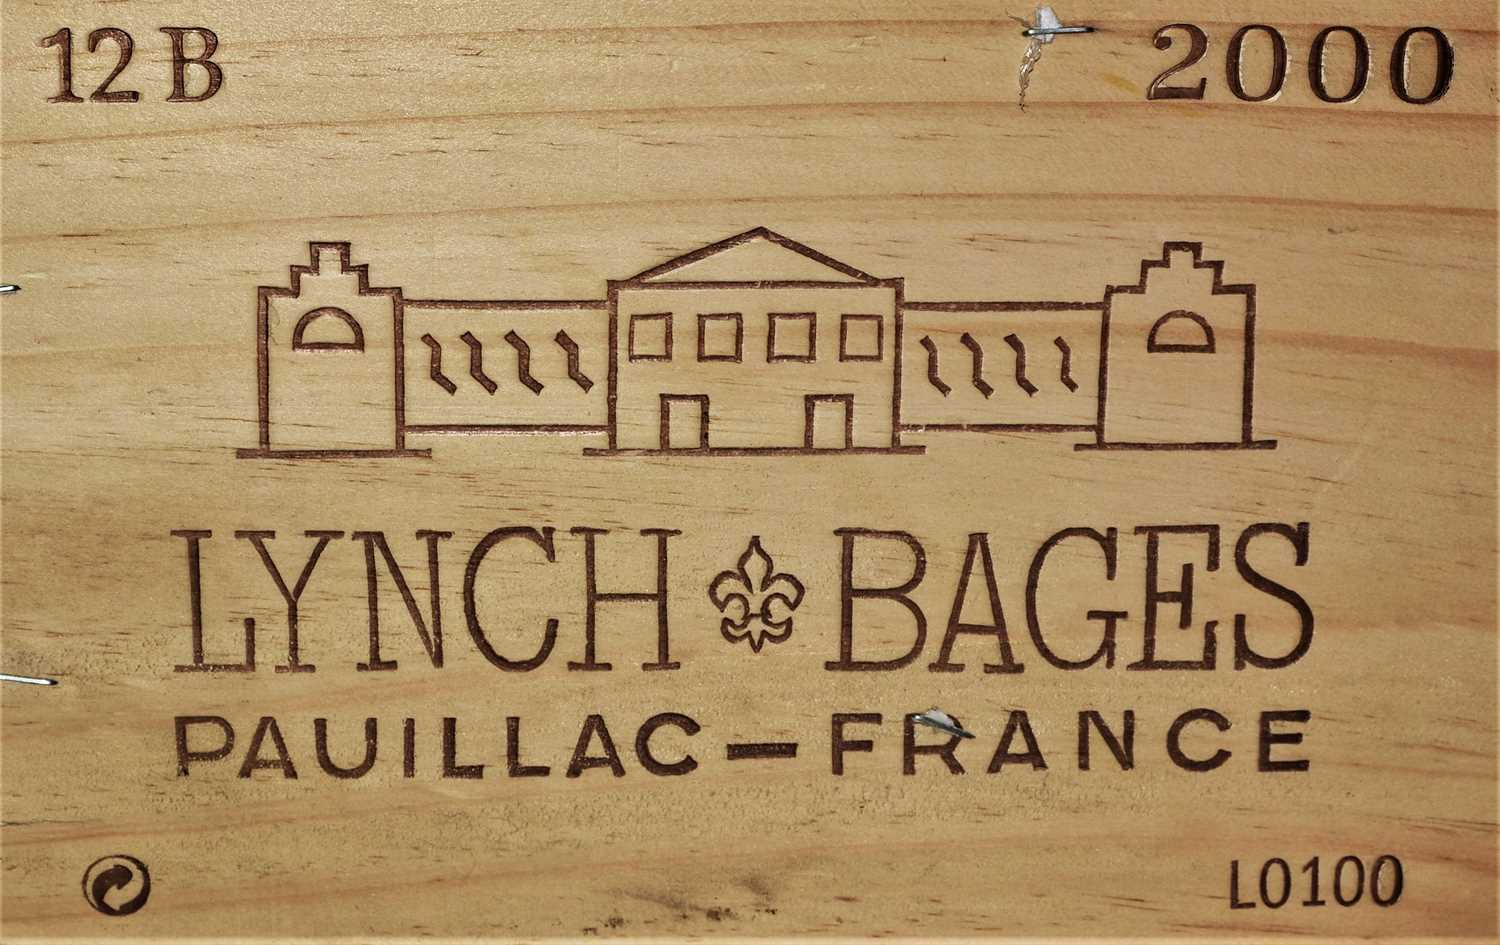 264 - Chateau Lynch Bages 2000